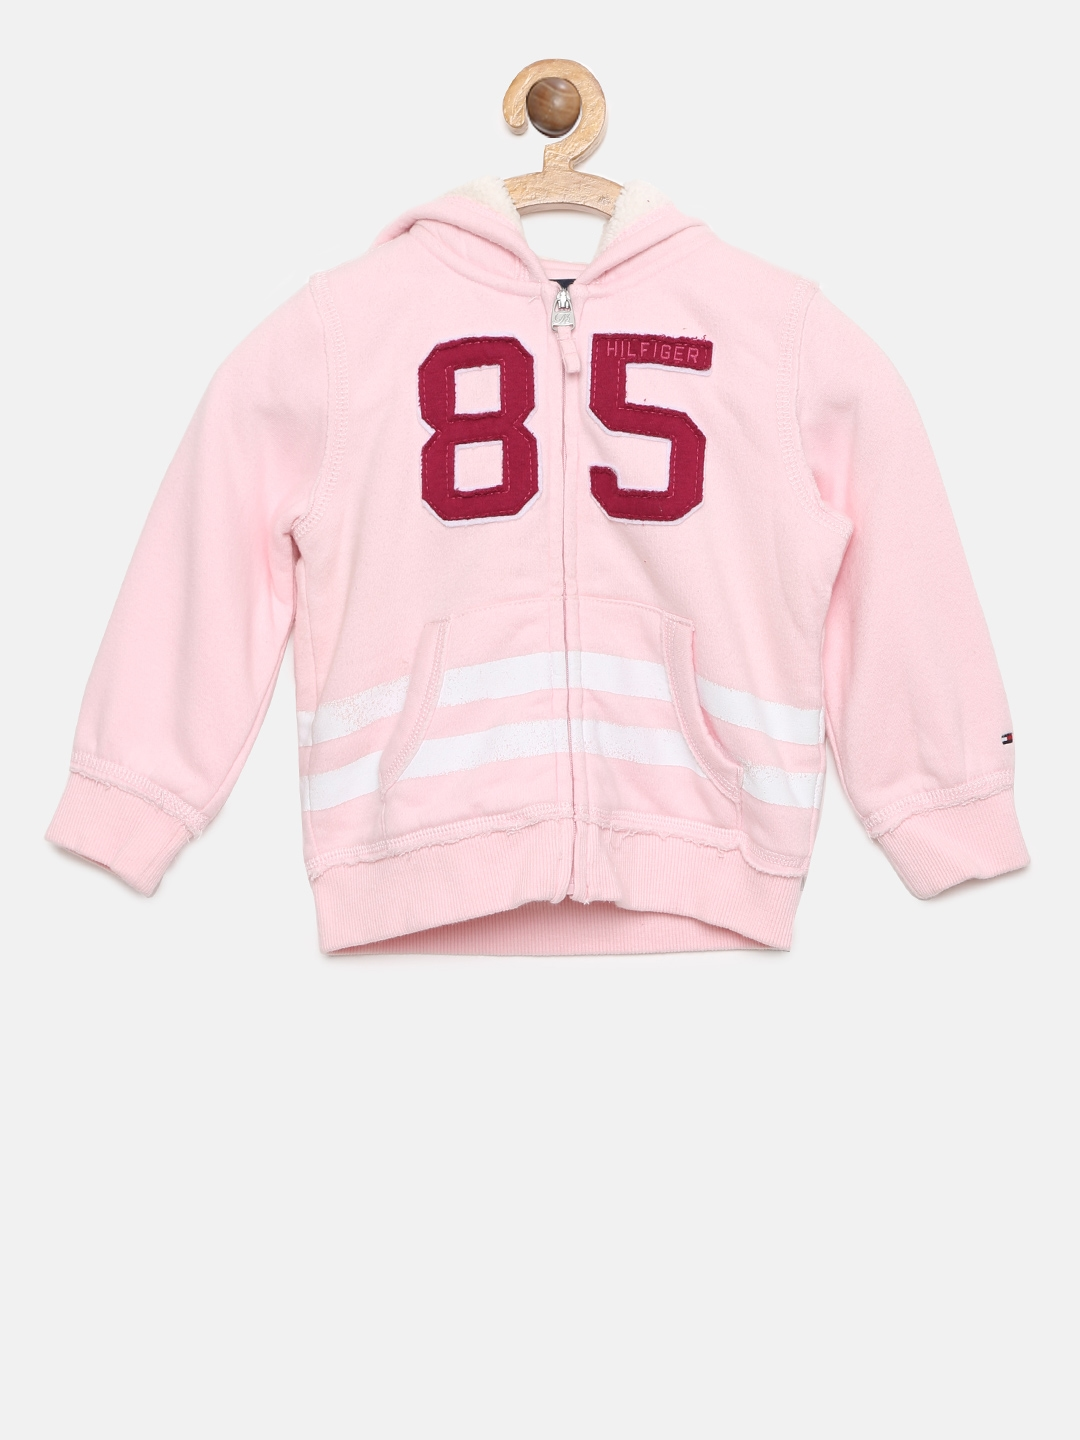 64ee5e75ab4 Buy Tommy Hilfiger Girls Pink Printed Hooded Sweatshirt ...